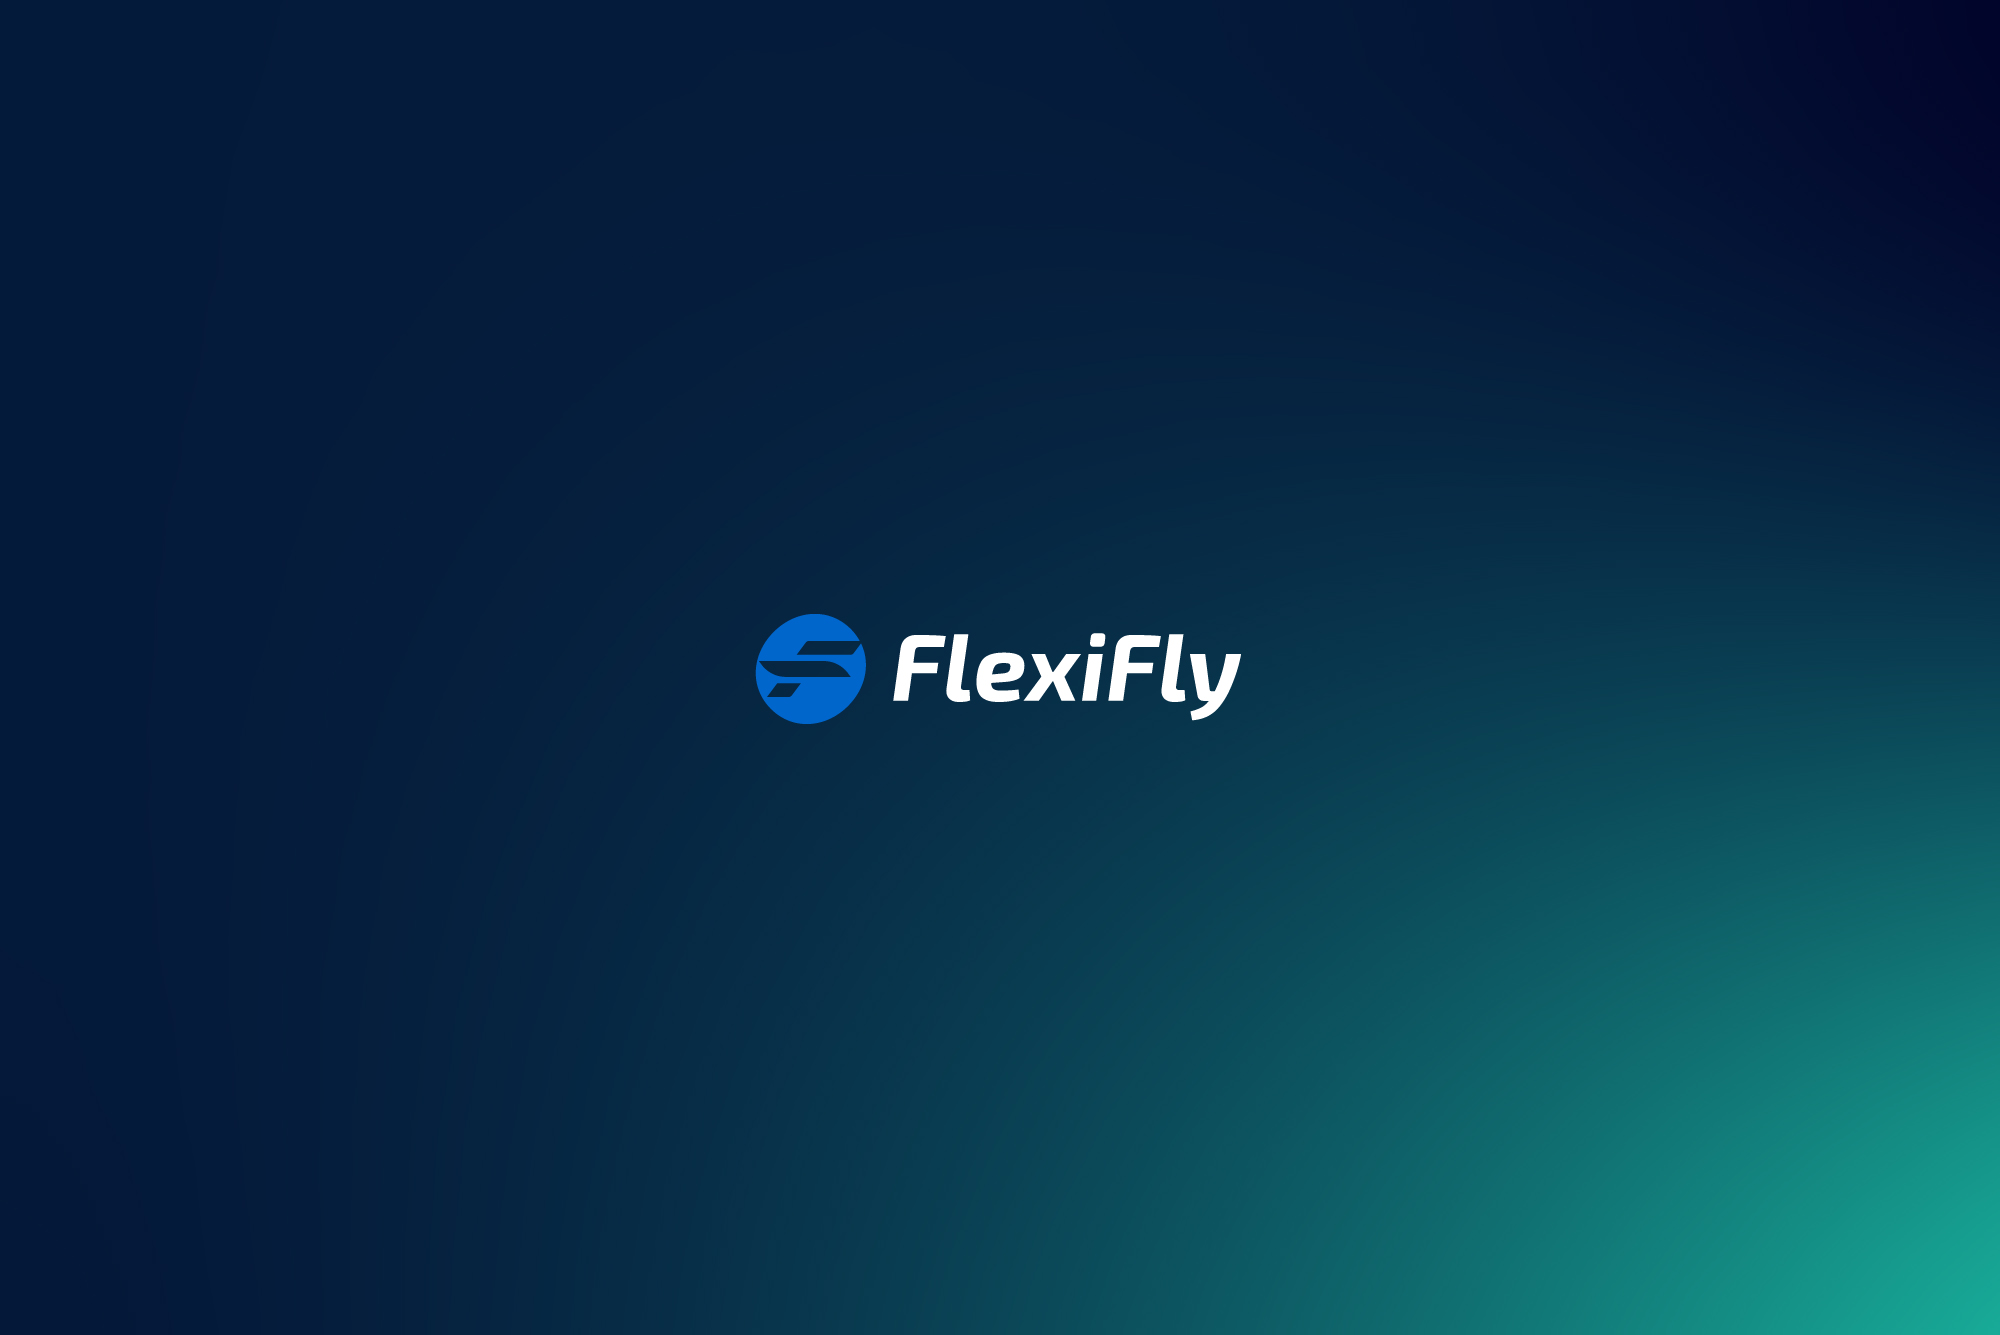 FlexiFly logo design and website